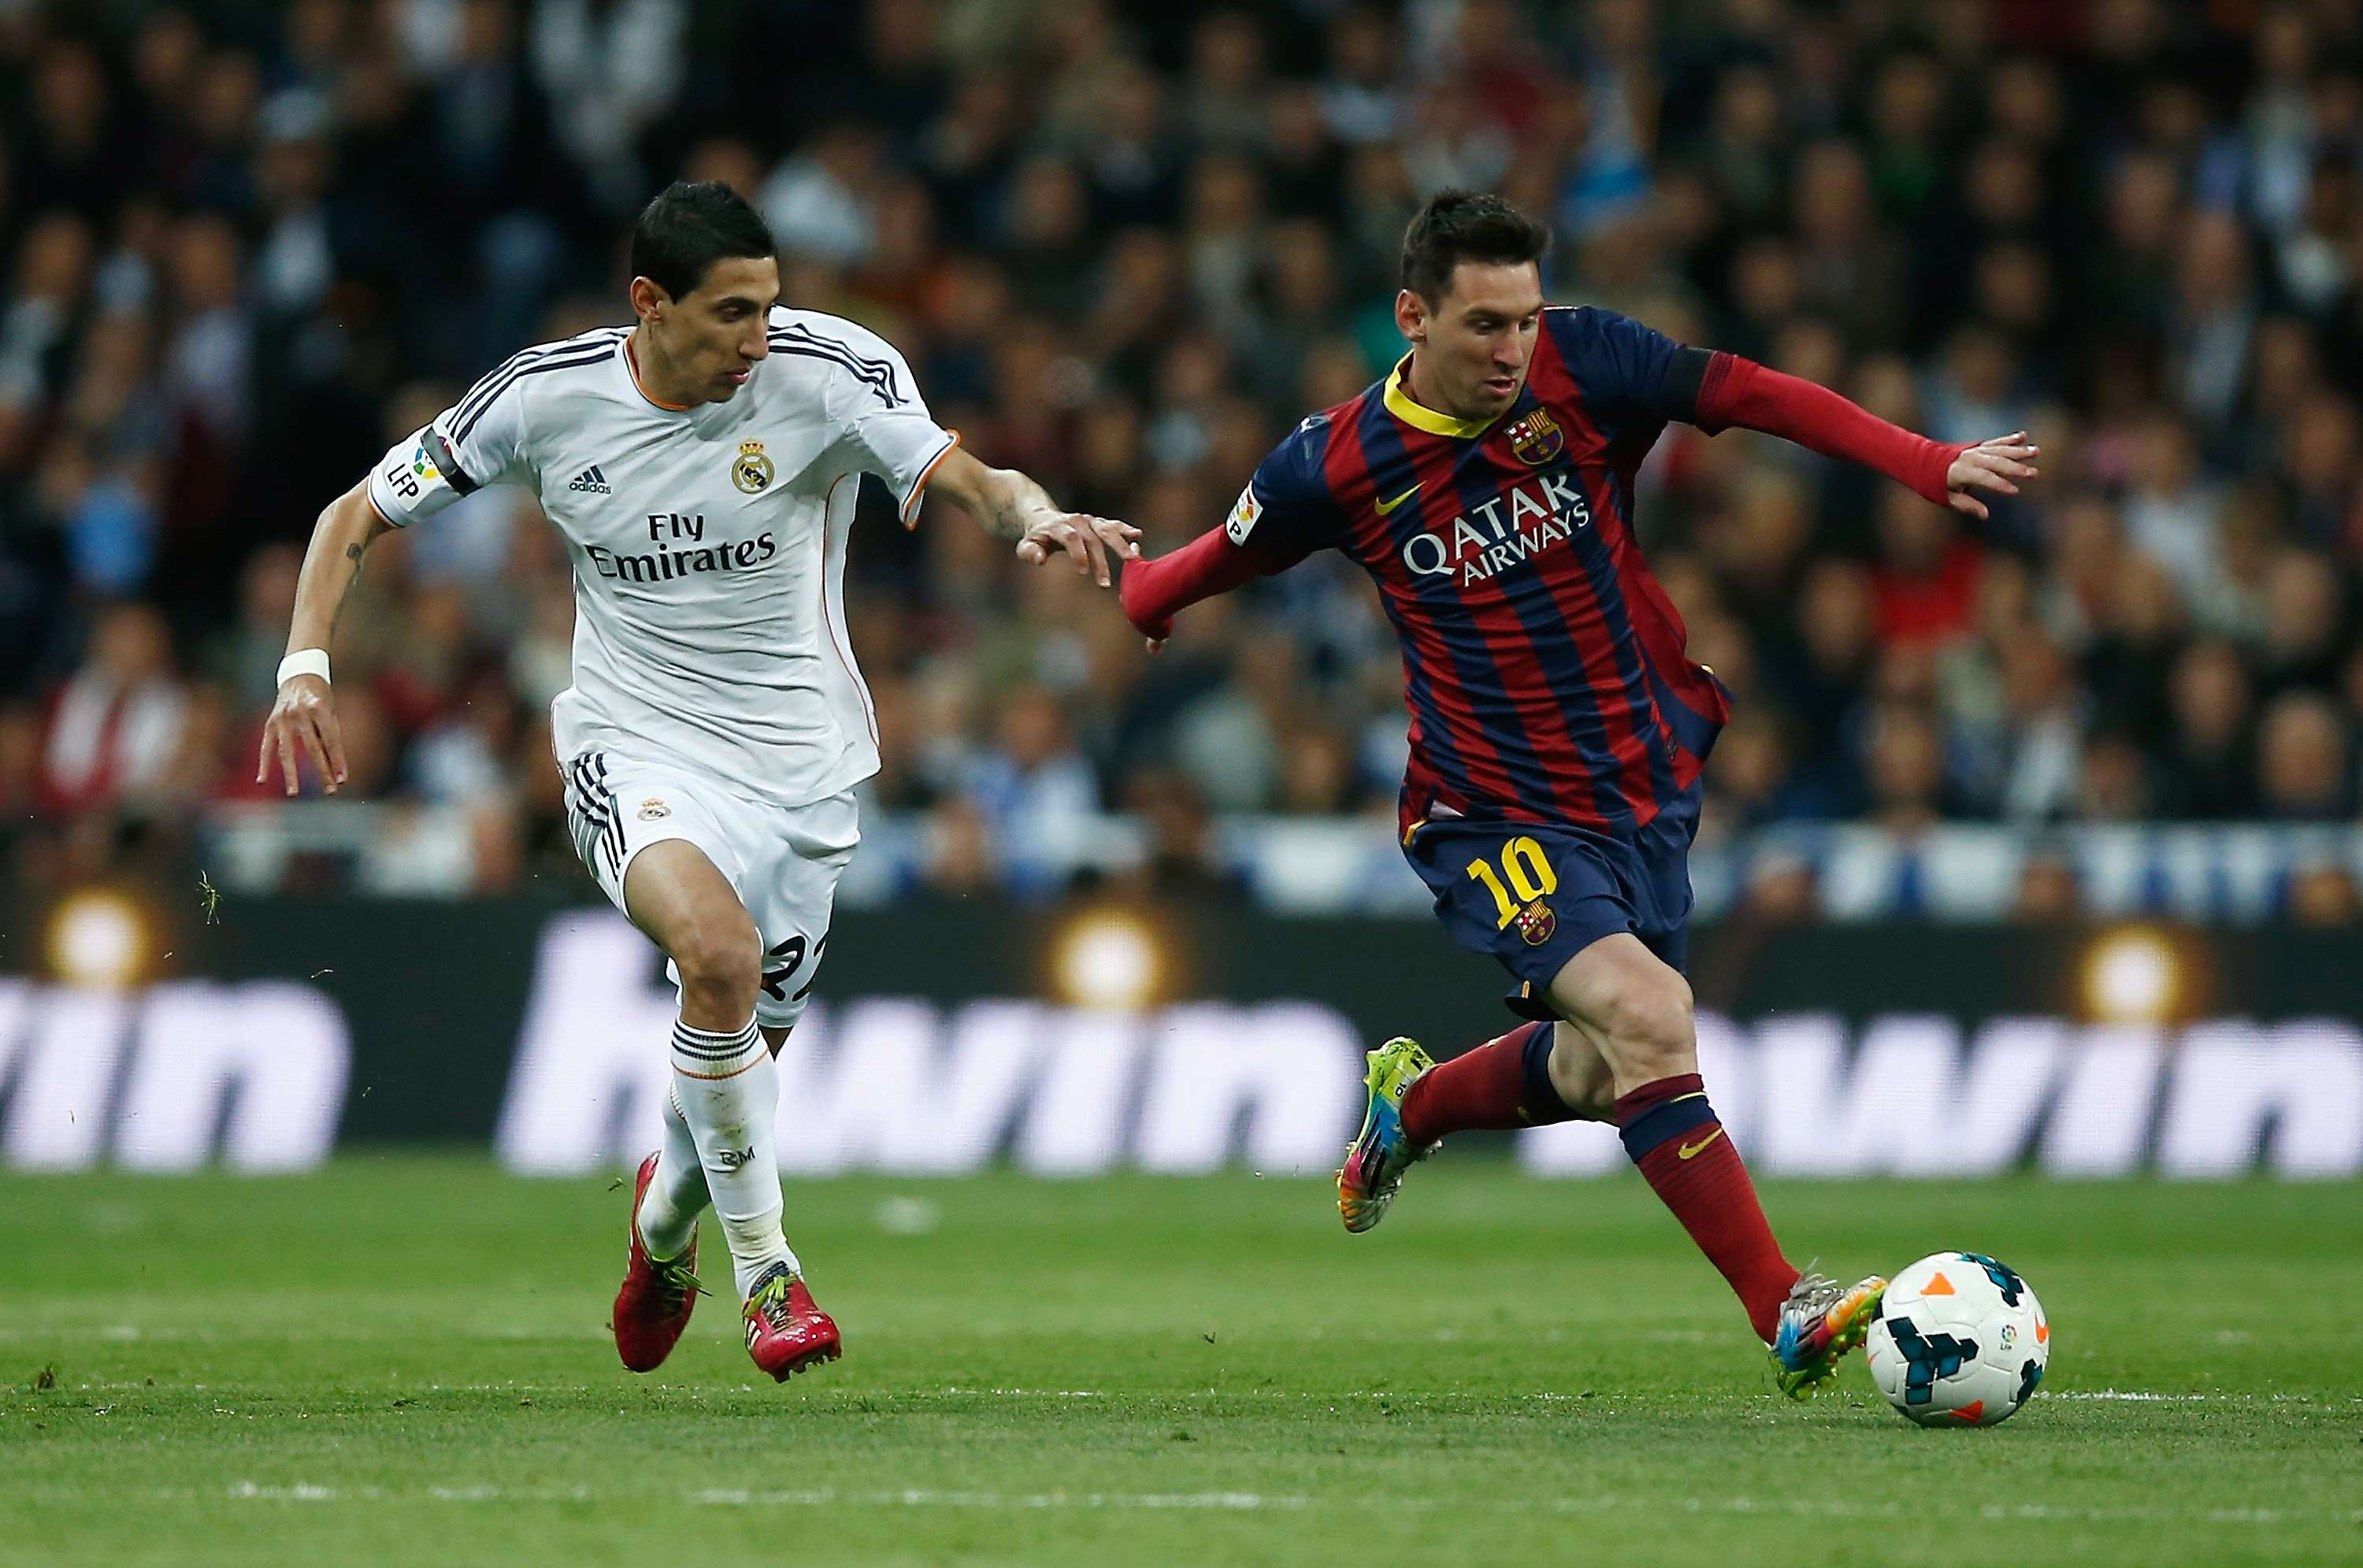 Barça vs Real Madrid: en vivo por final de Copa del Rey 2014